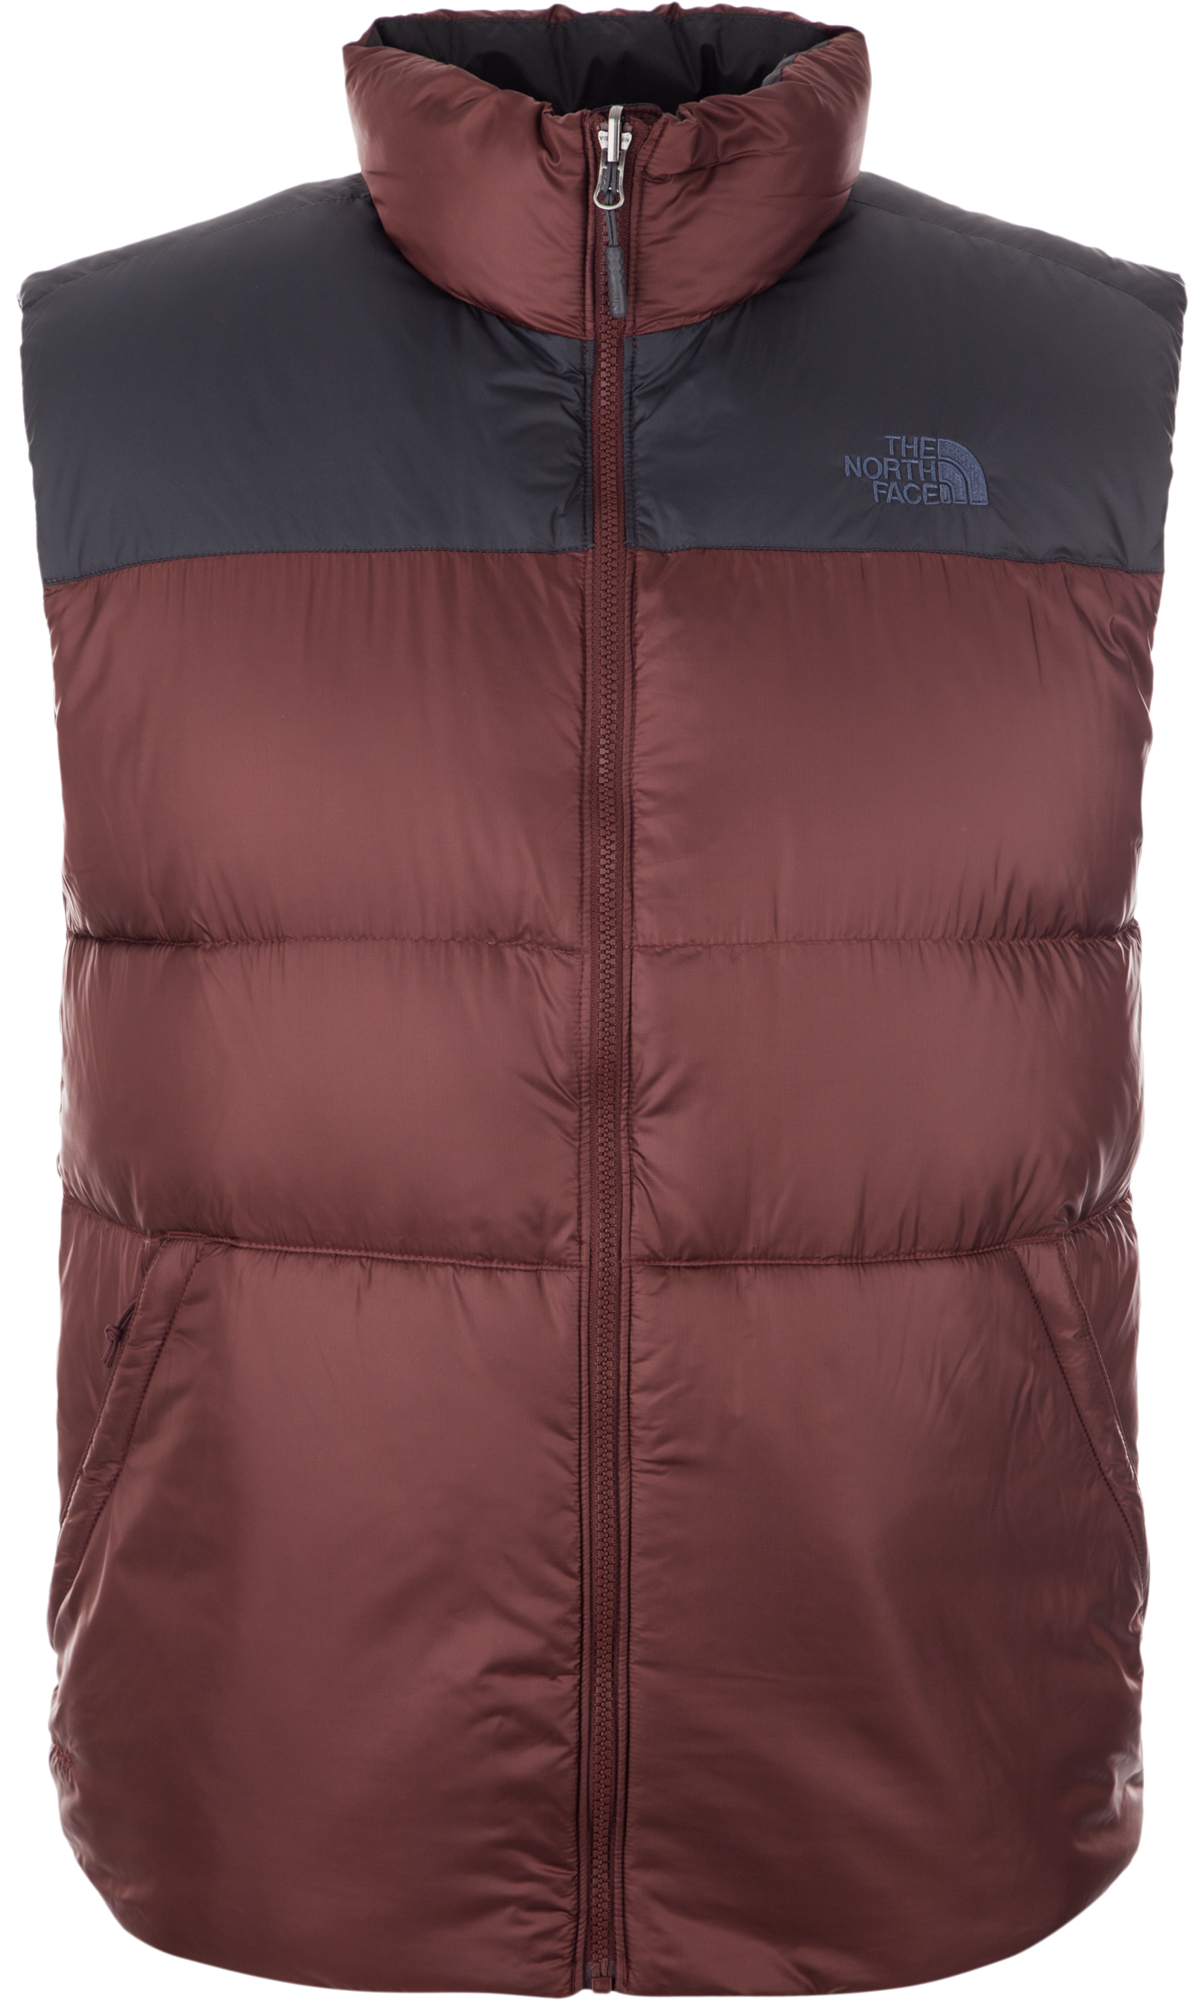 The North Face Жилет пуховой мужской The North Face Nuptse III Vest, размер 52 тапочки the north face the north face nuptse tent mule iii женские